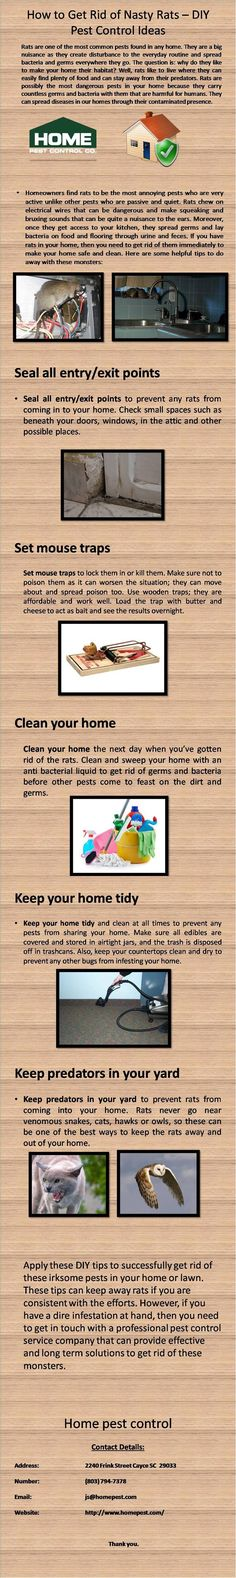 Rats are one of the dangerous pest we face every day in our life. Here are some tips by which you can get rid from these dangerous diseases spreading monsters. For more information visit www.homepest.com/